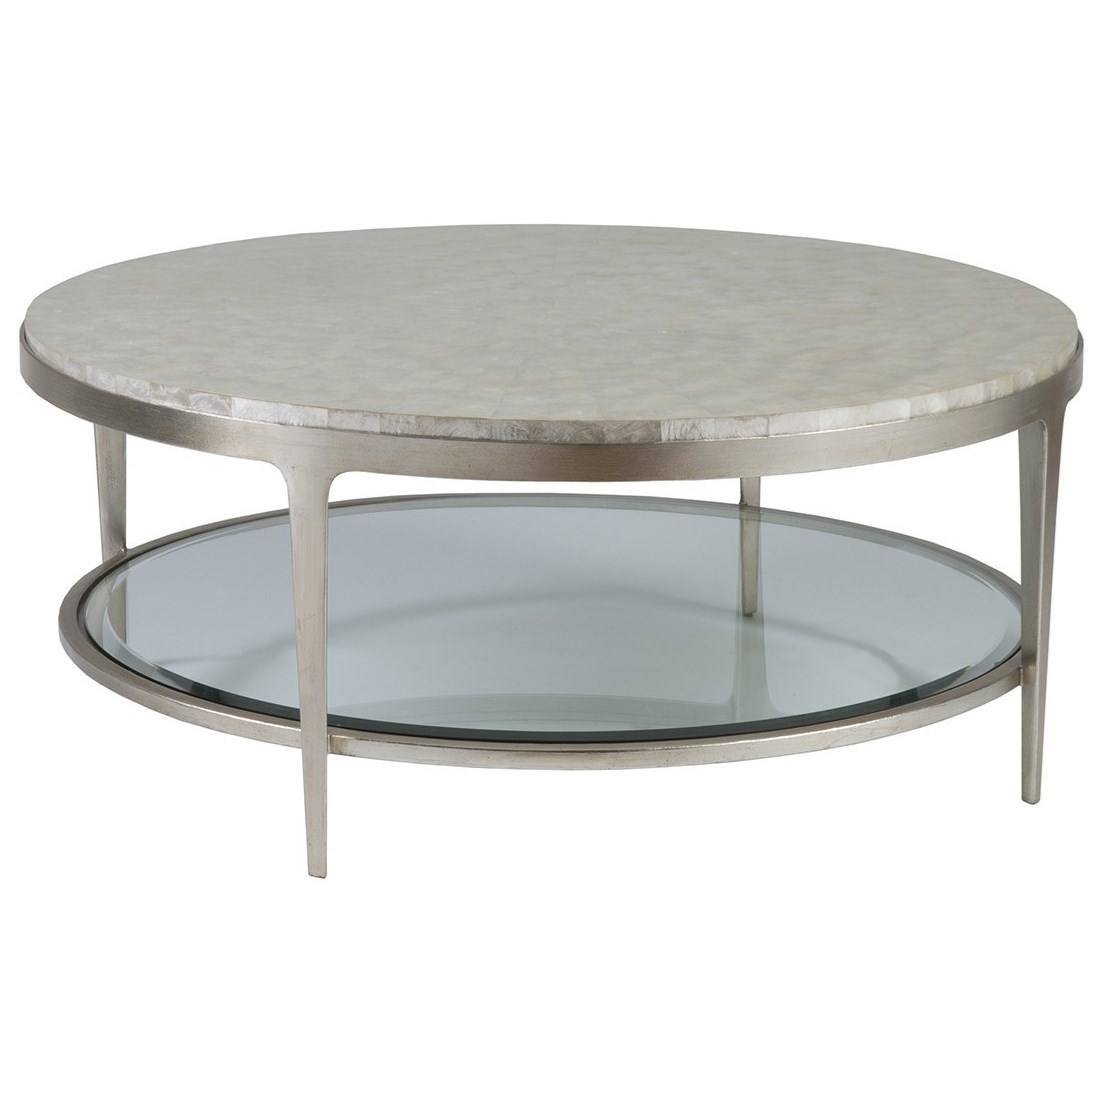 Gravitas Round Cocktail Table by Artistica at Baer's Furniture